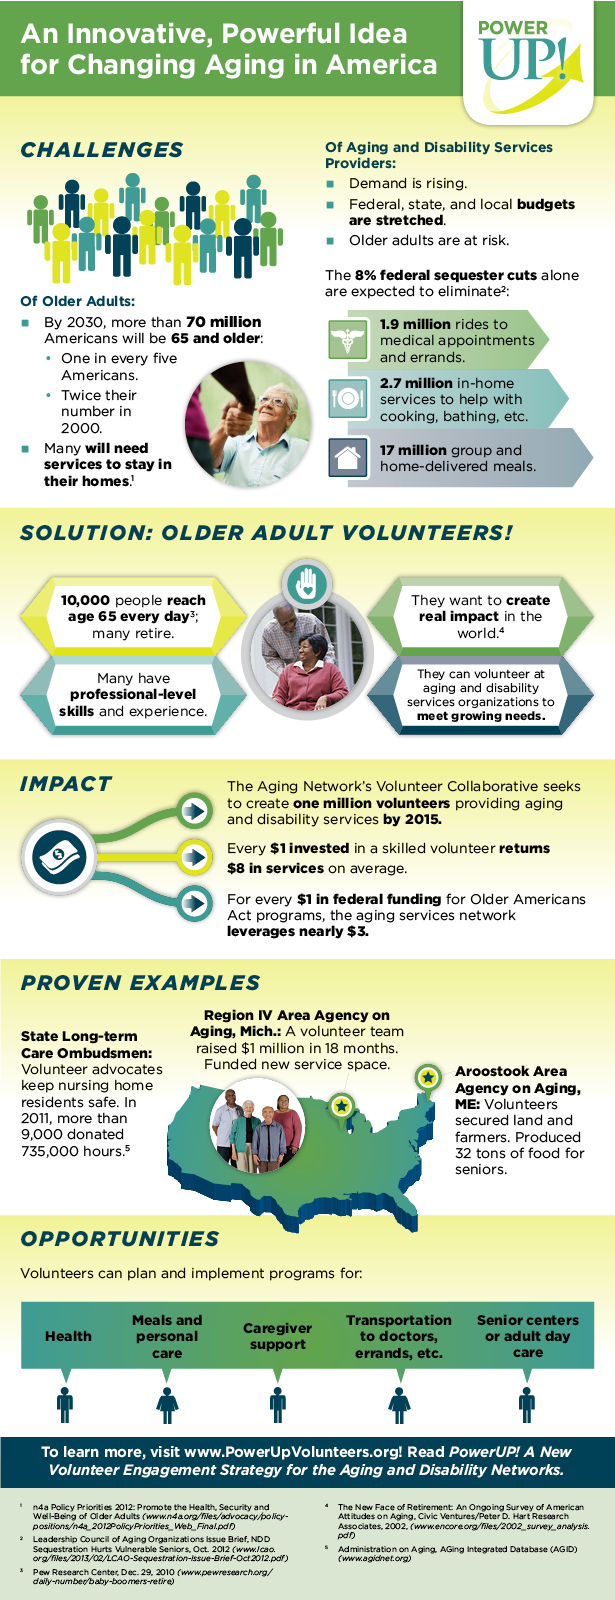 n4a | National Association of Area Agencies on Aging